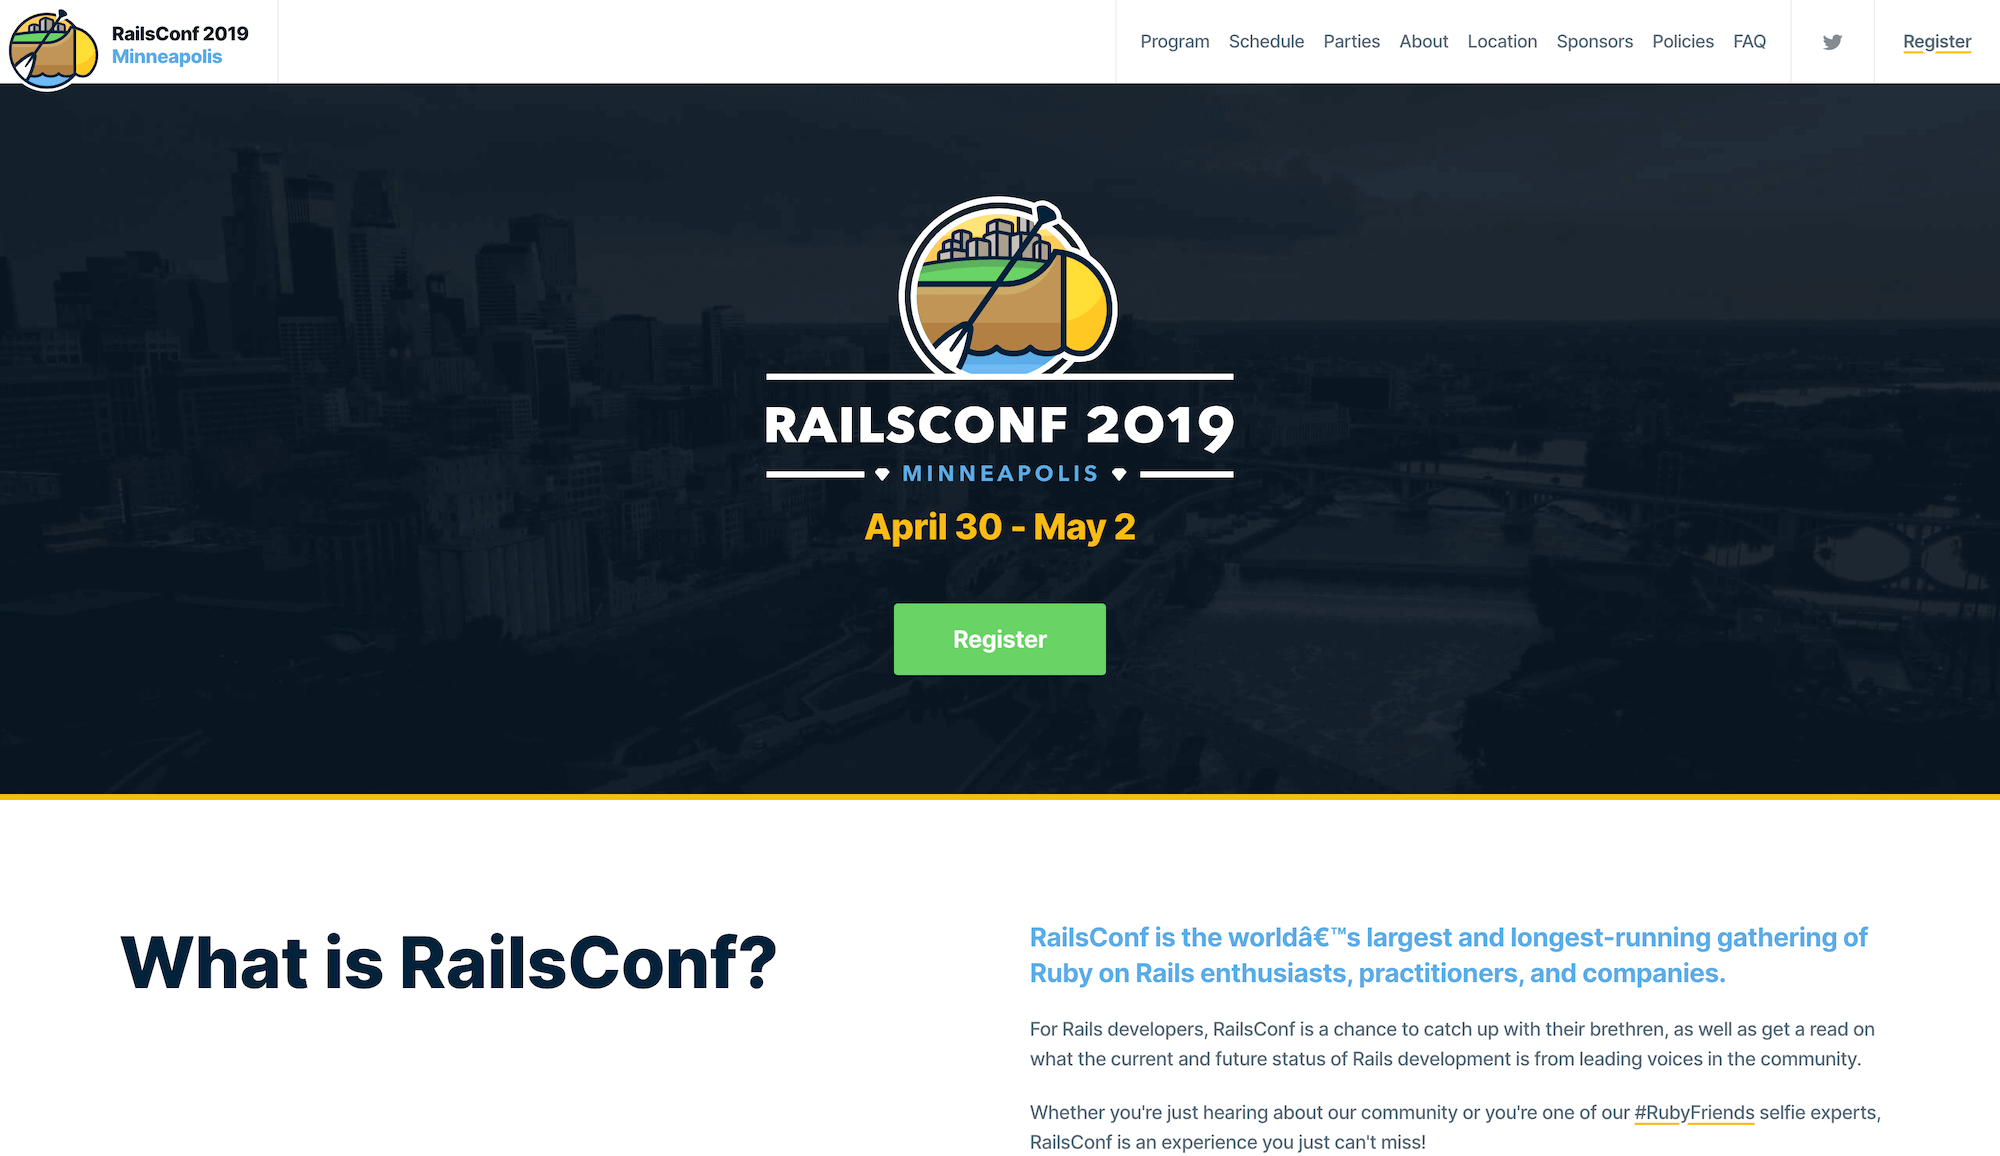 RailsConf Landing Page Example